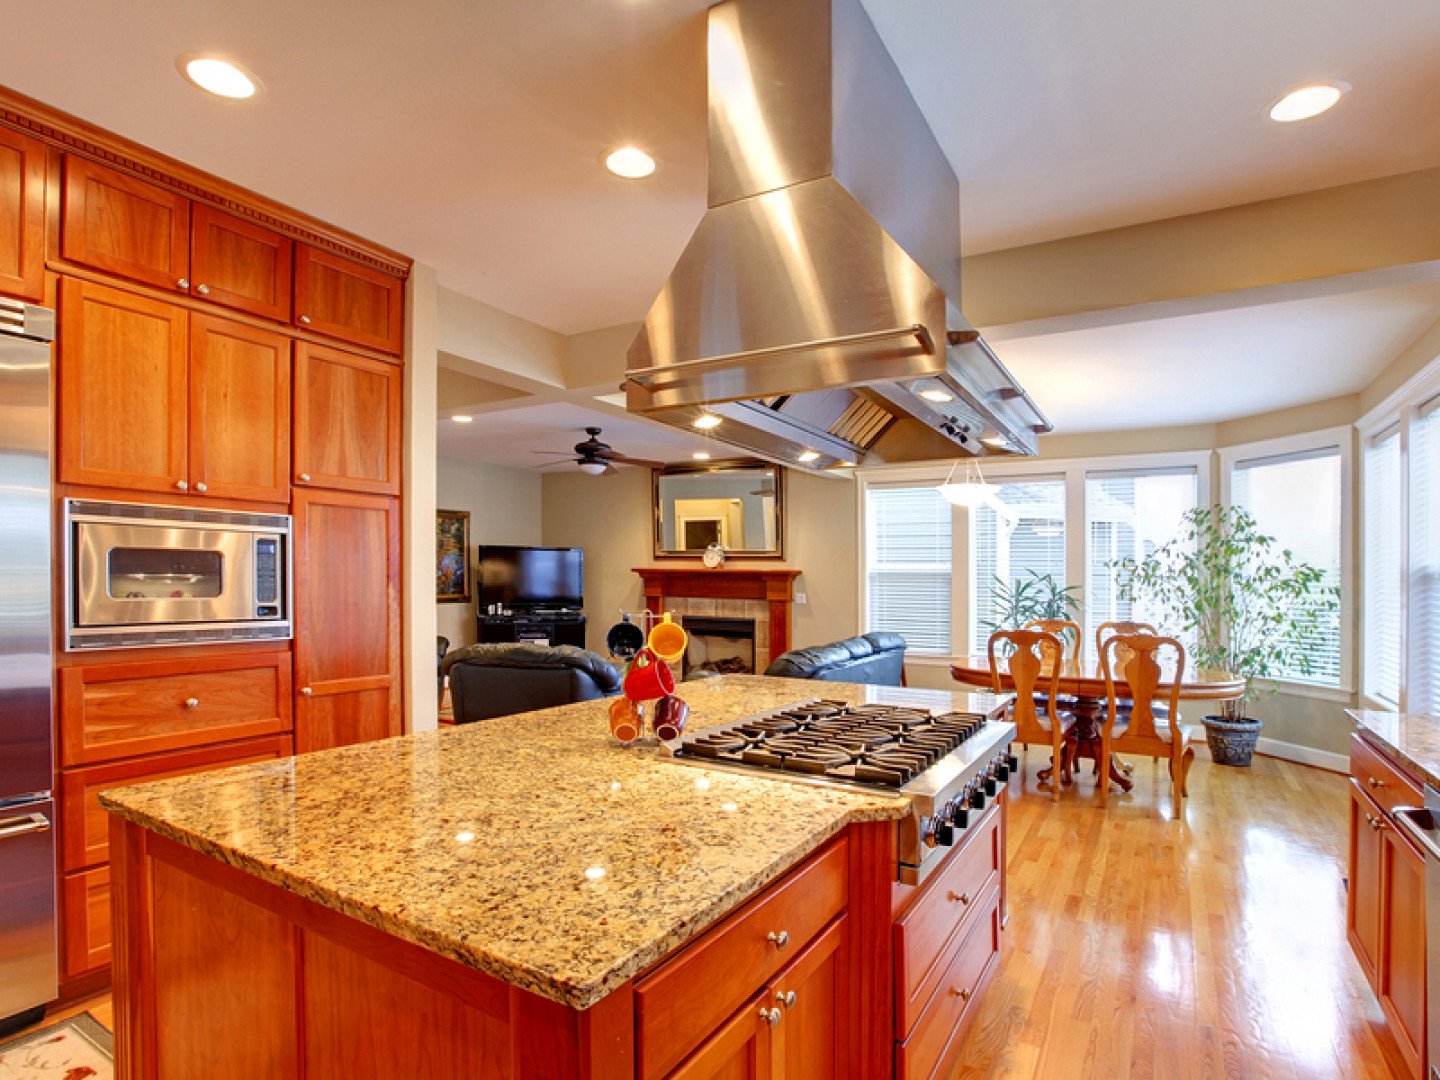 Kitchen Remodels, Bathroom Remodels, Additions & More!